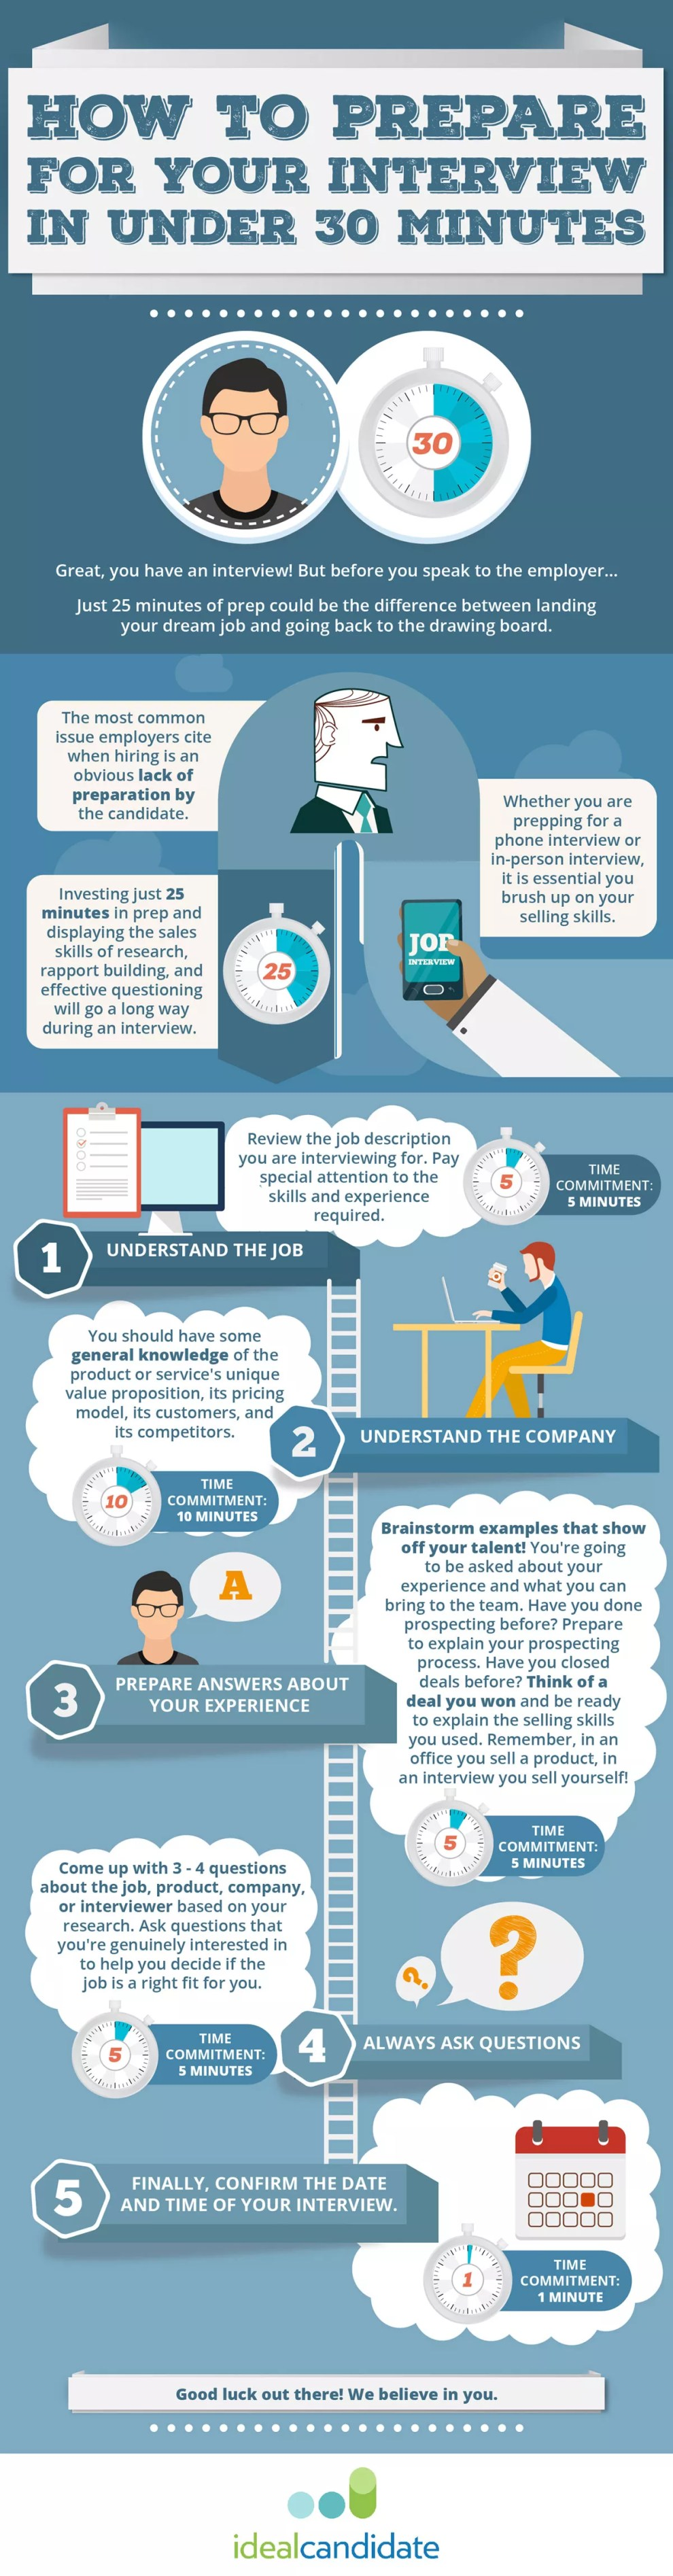 infographic-how-to-prepare-for-your-interview